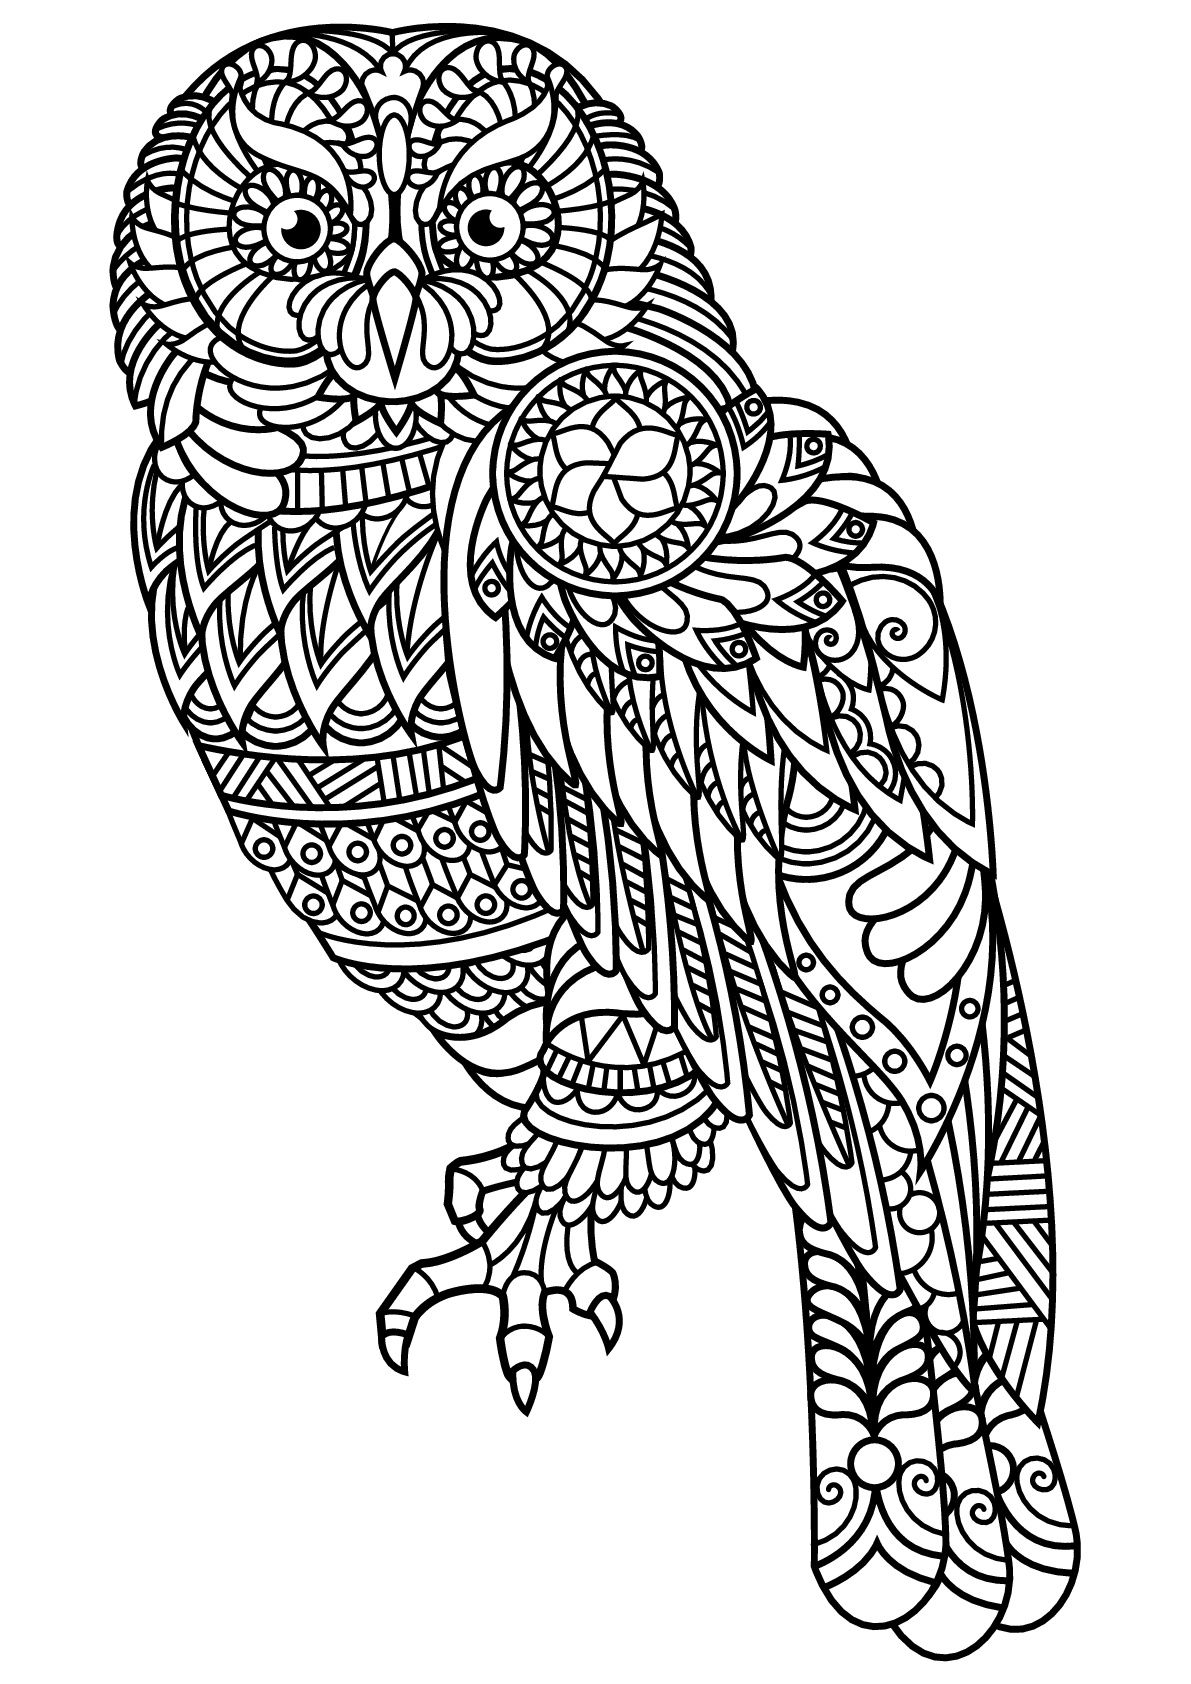 Owl, with complex and beautiful patterns, From the gallery